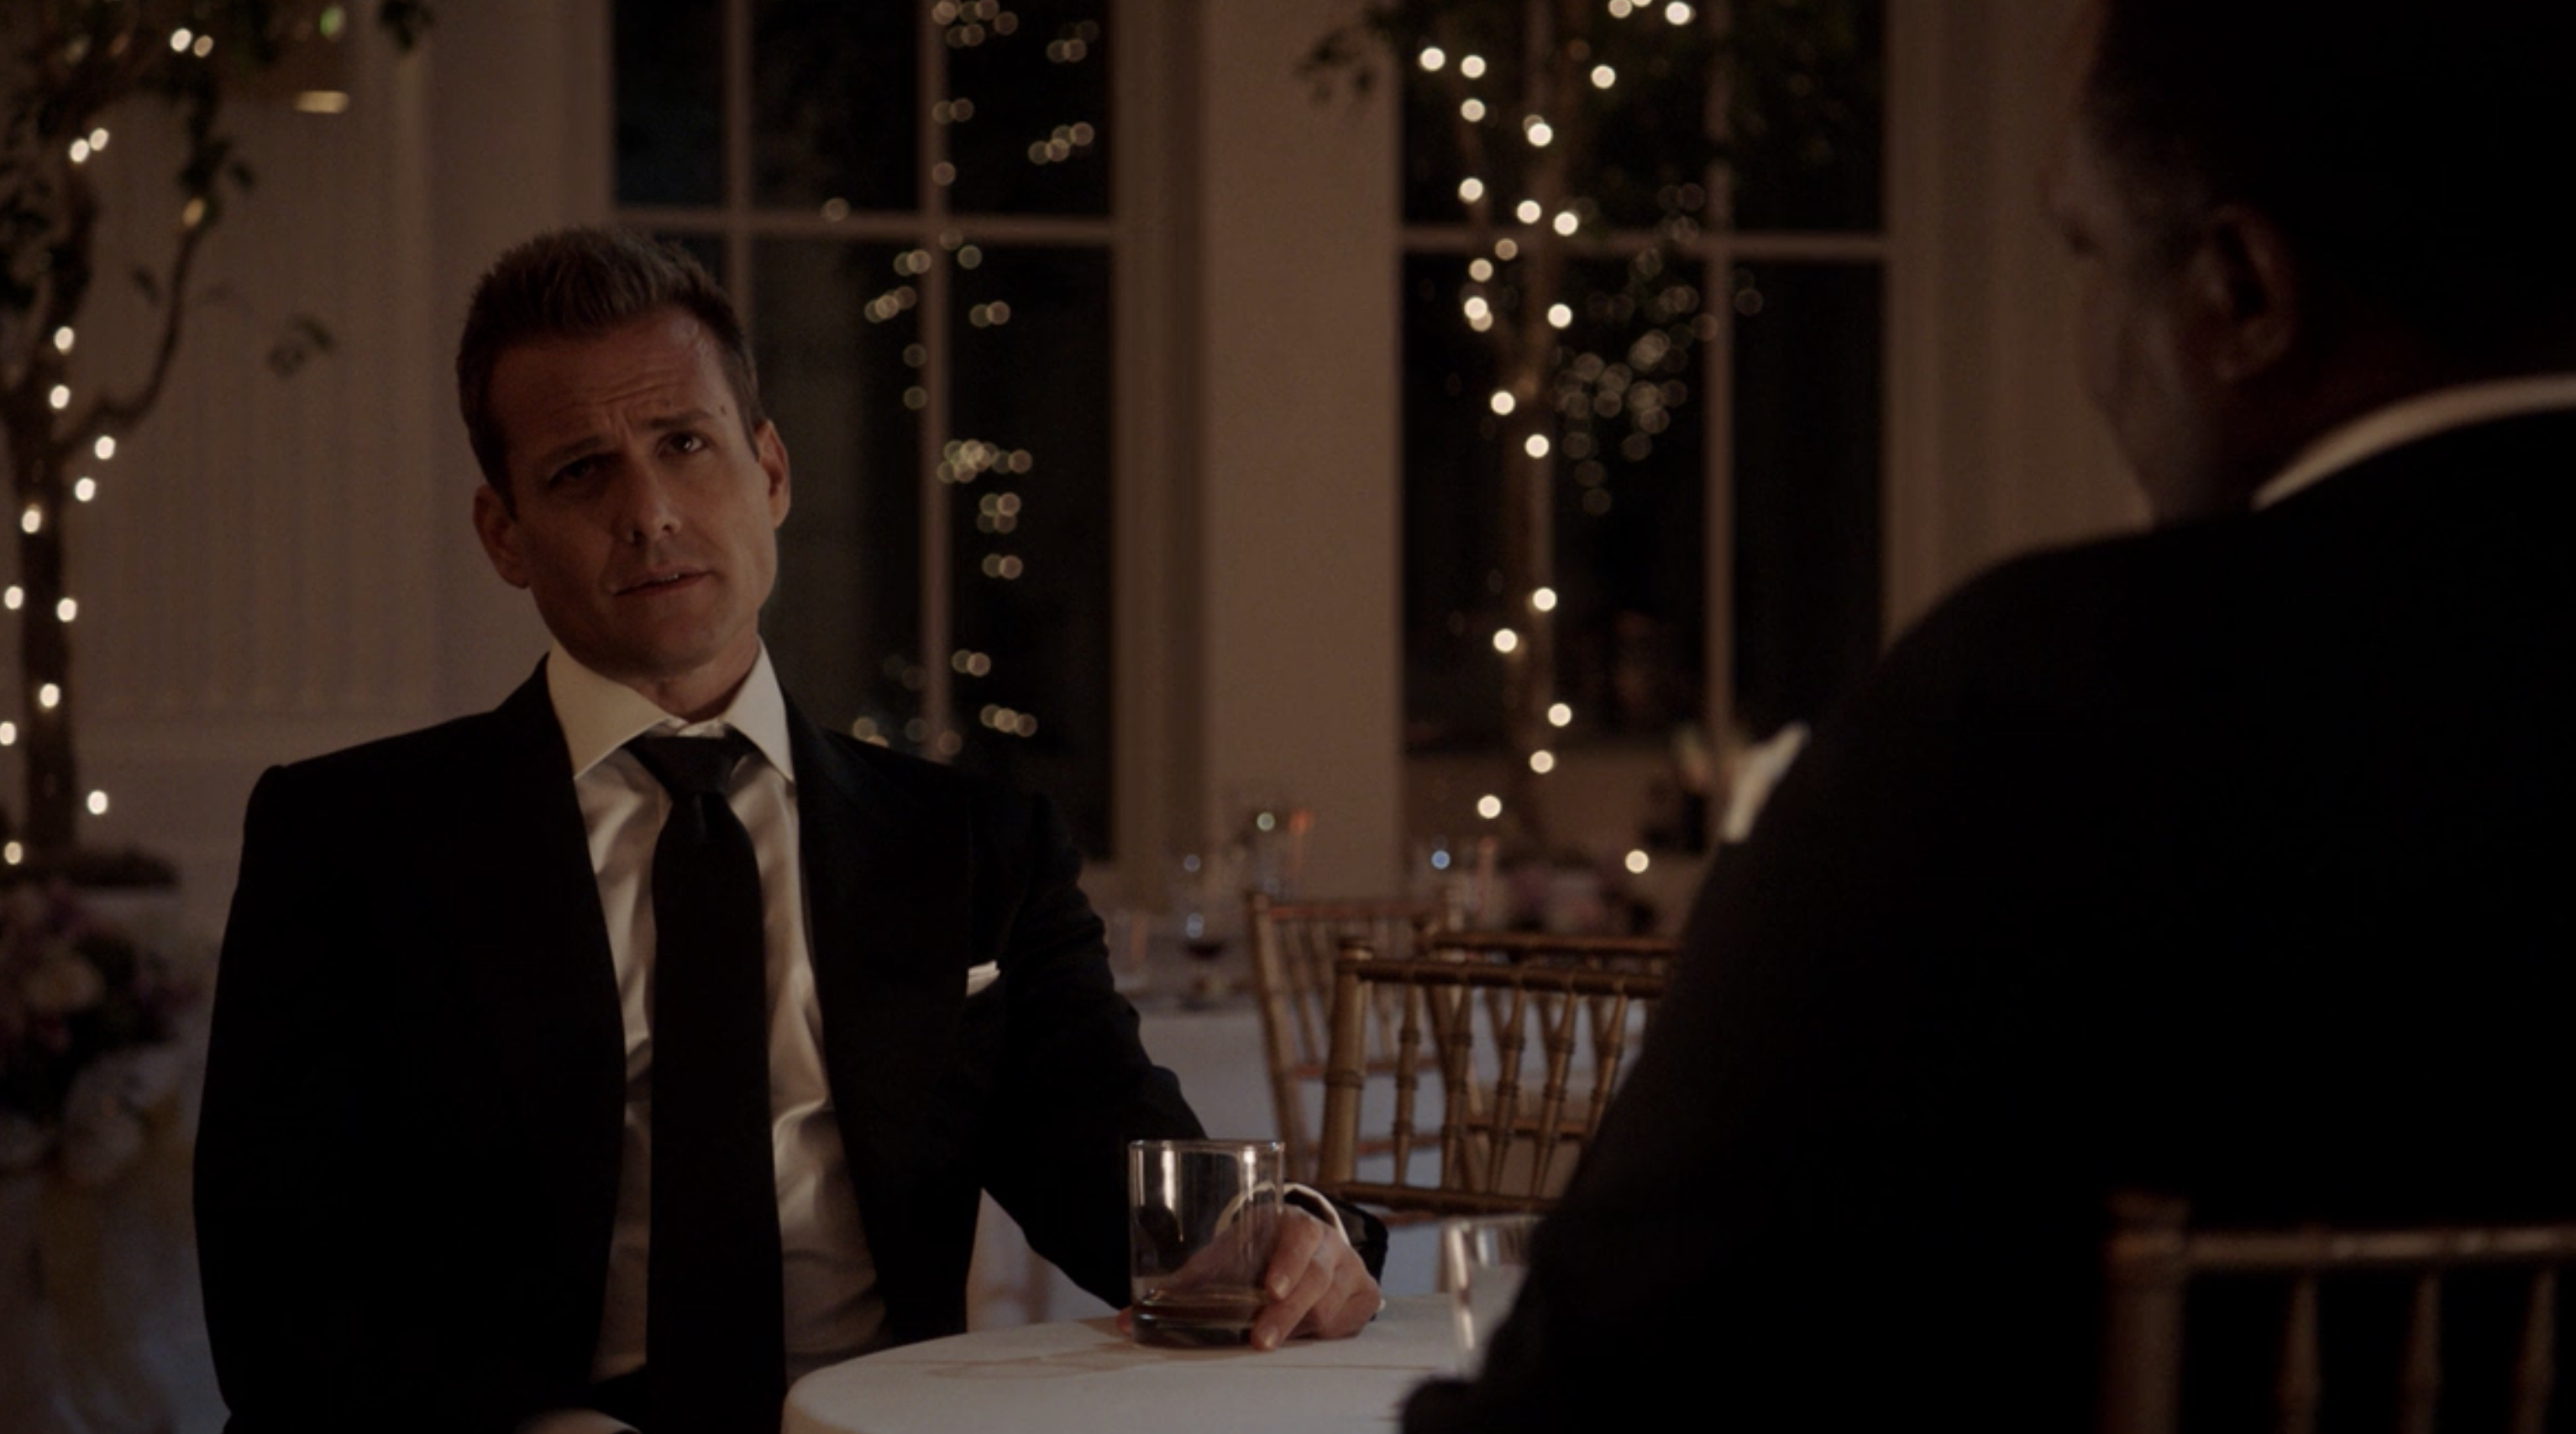 Suits season 8 episode 1 - Review - Right-Hand Man